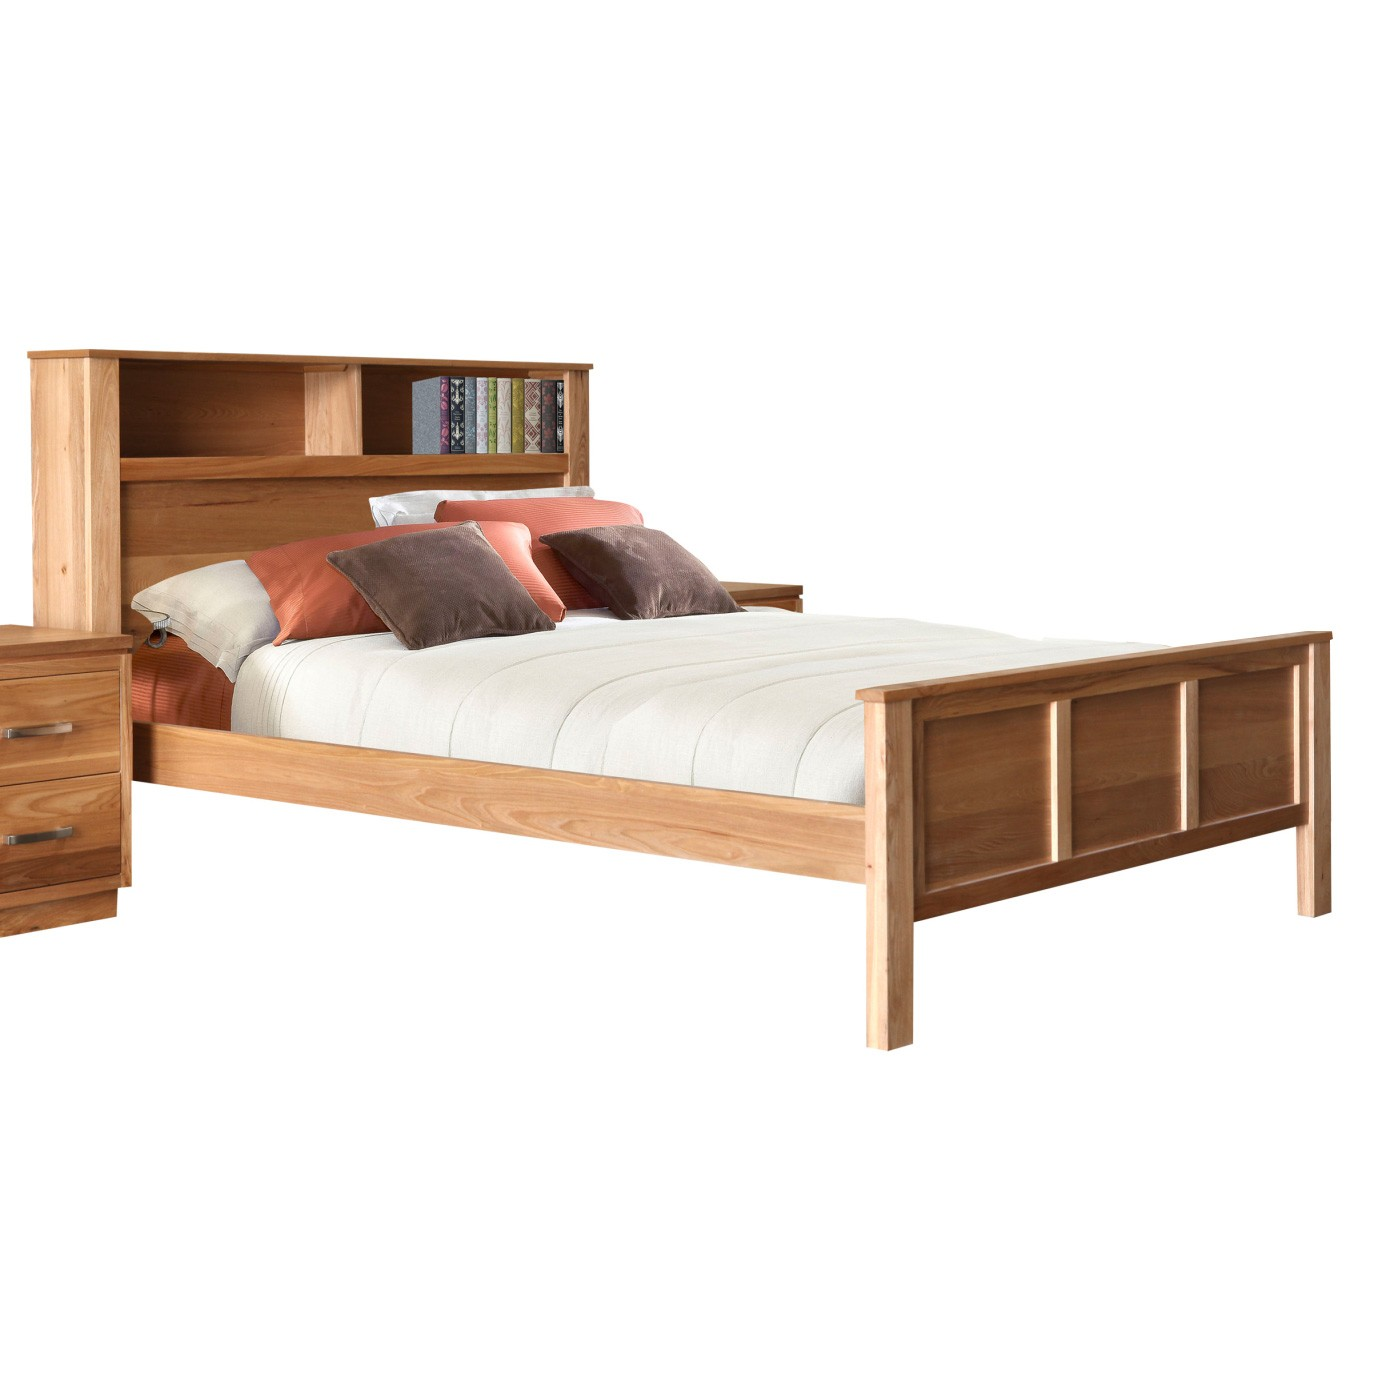 Tara Elm Timber Bookcase Bed, Queen